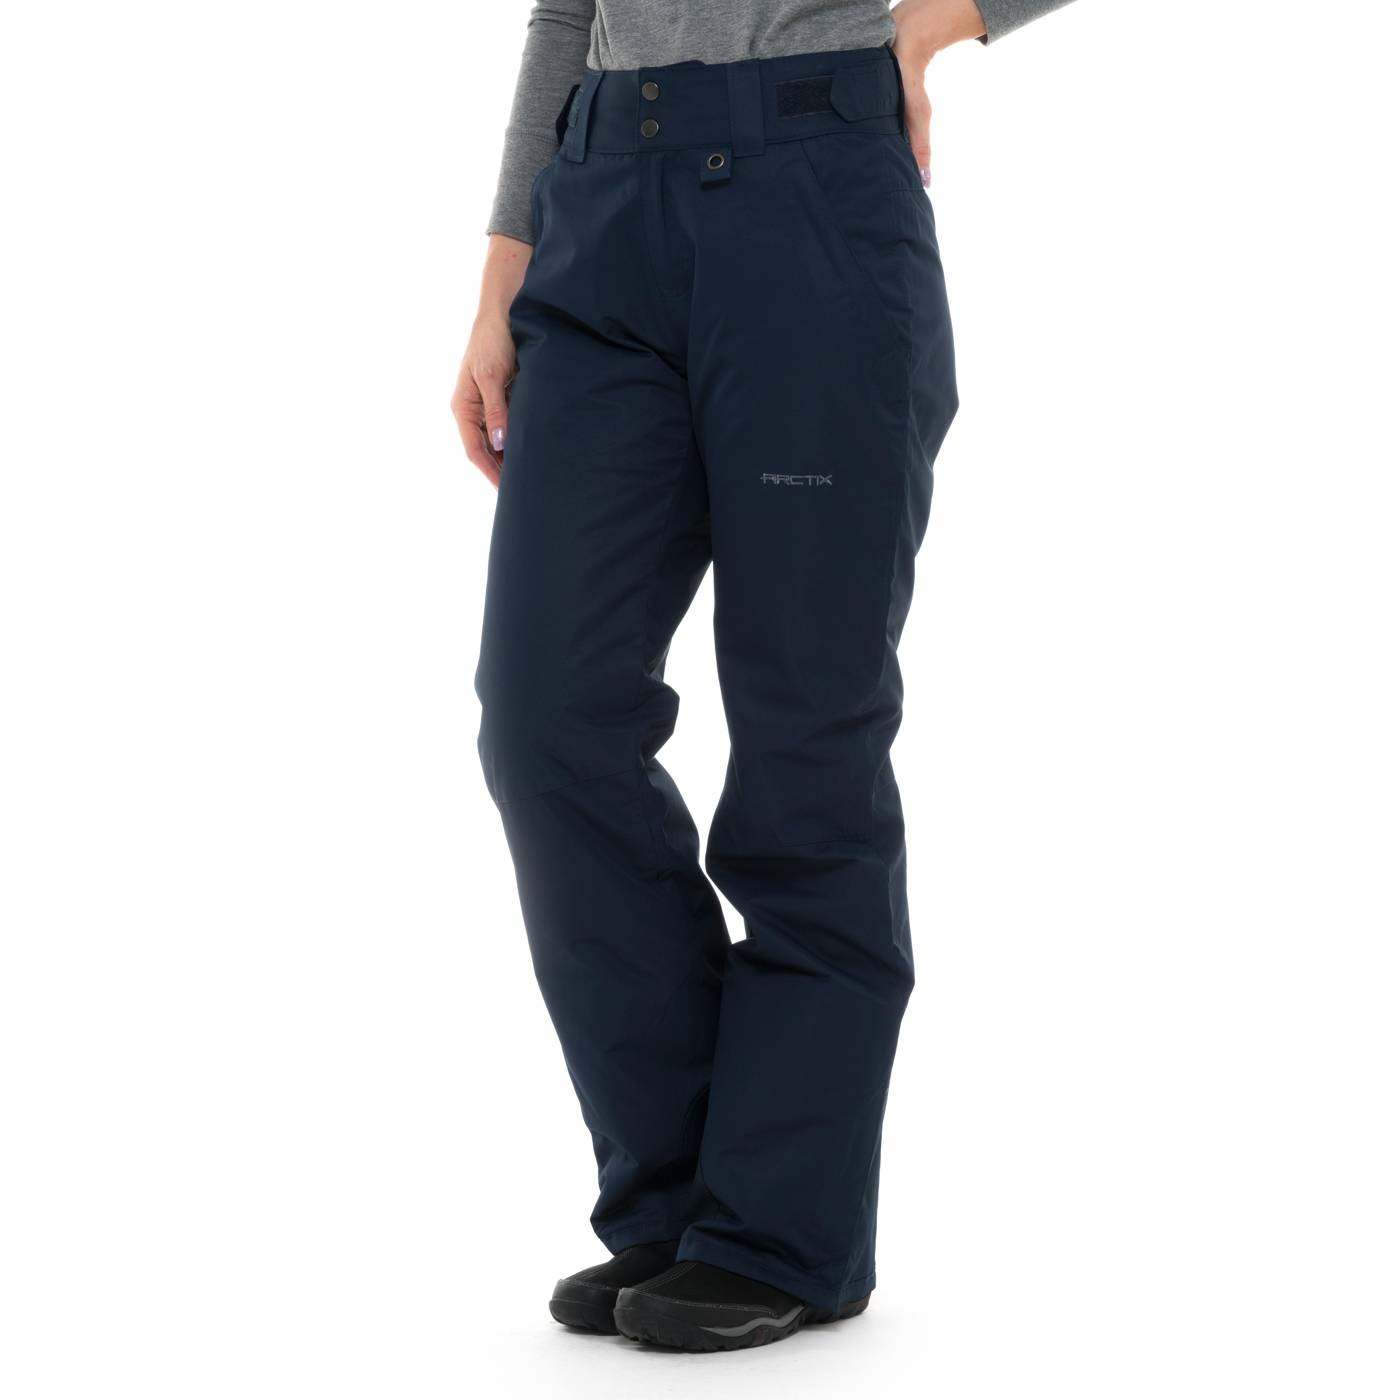 Arctix 1800 Classic Women's Snow Pants, New